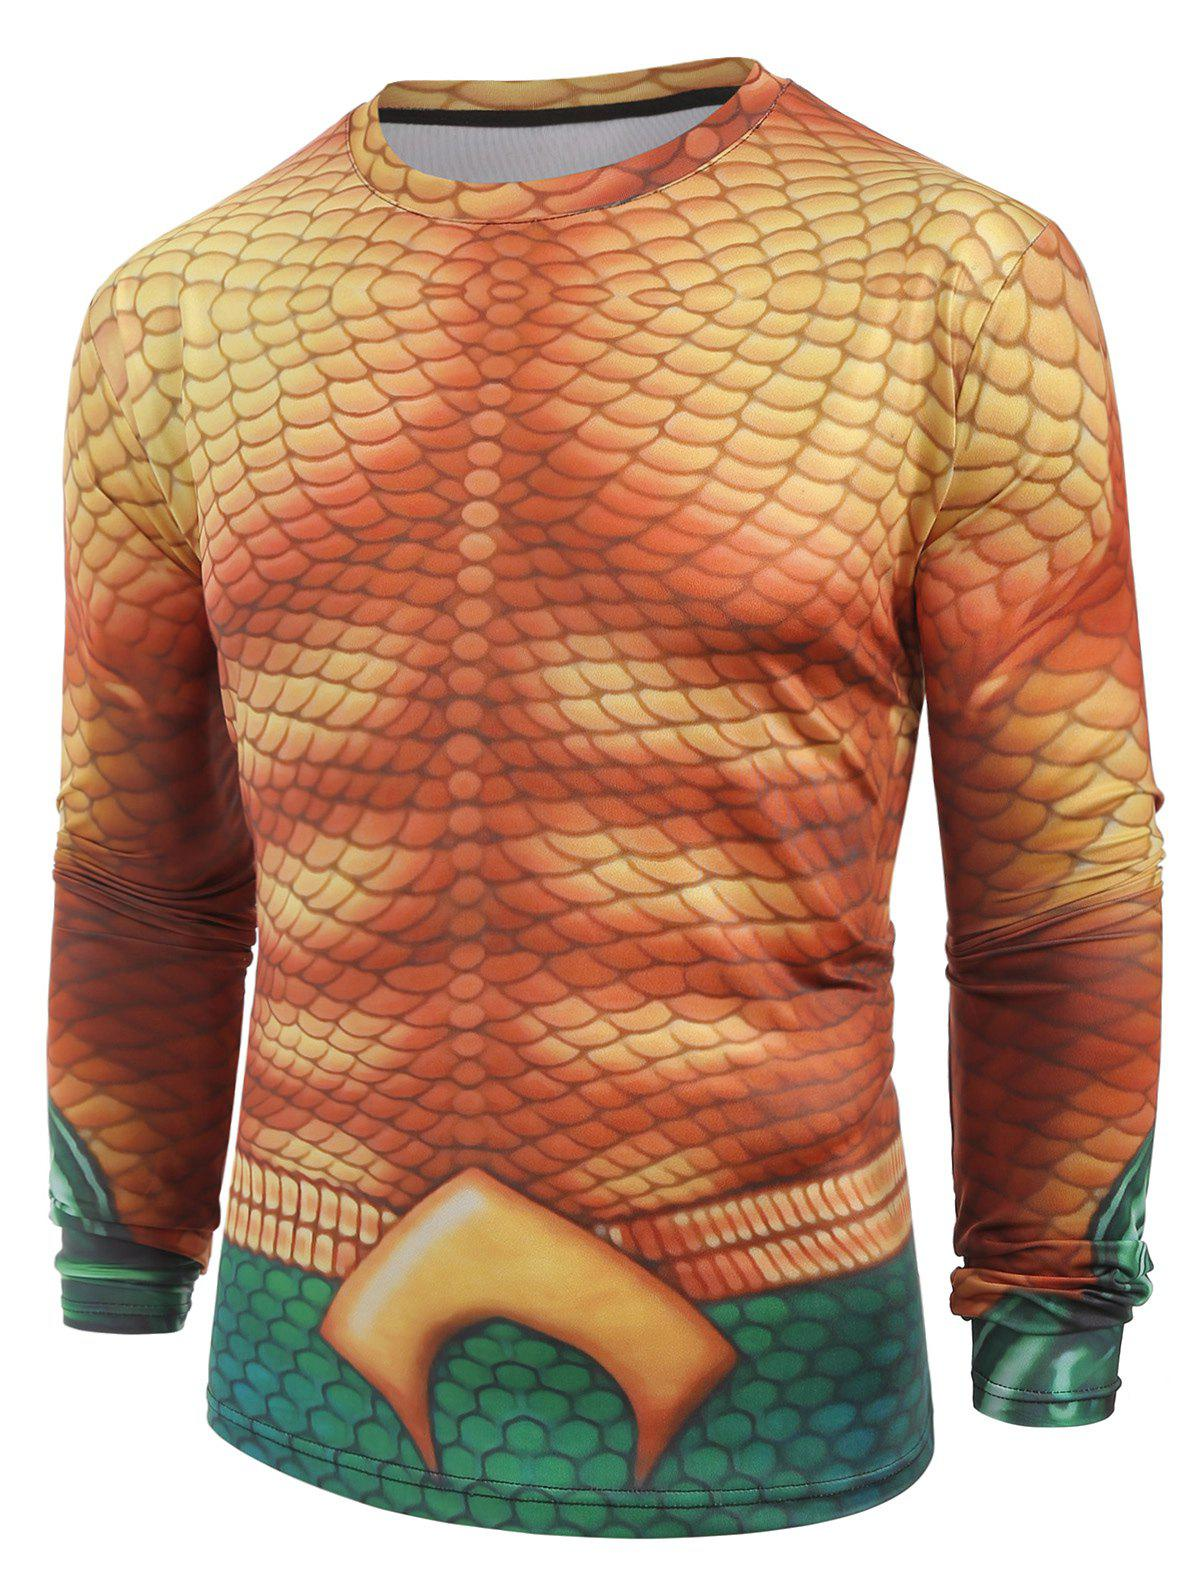 Fish Scales Print Casual Long Sleeves T-shirt - multicolor XS